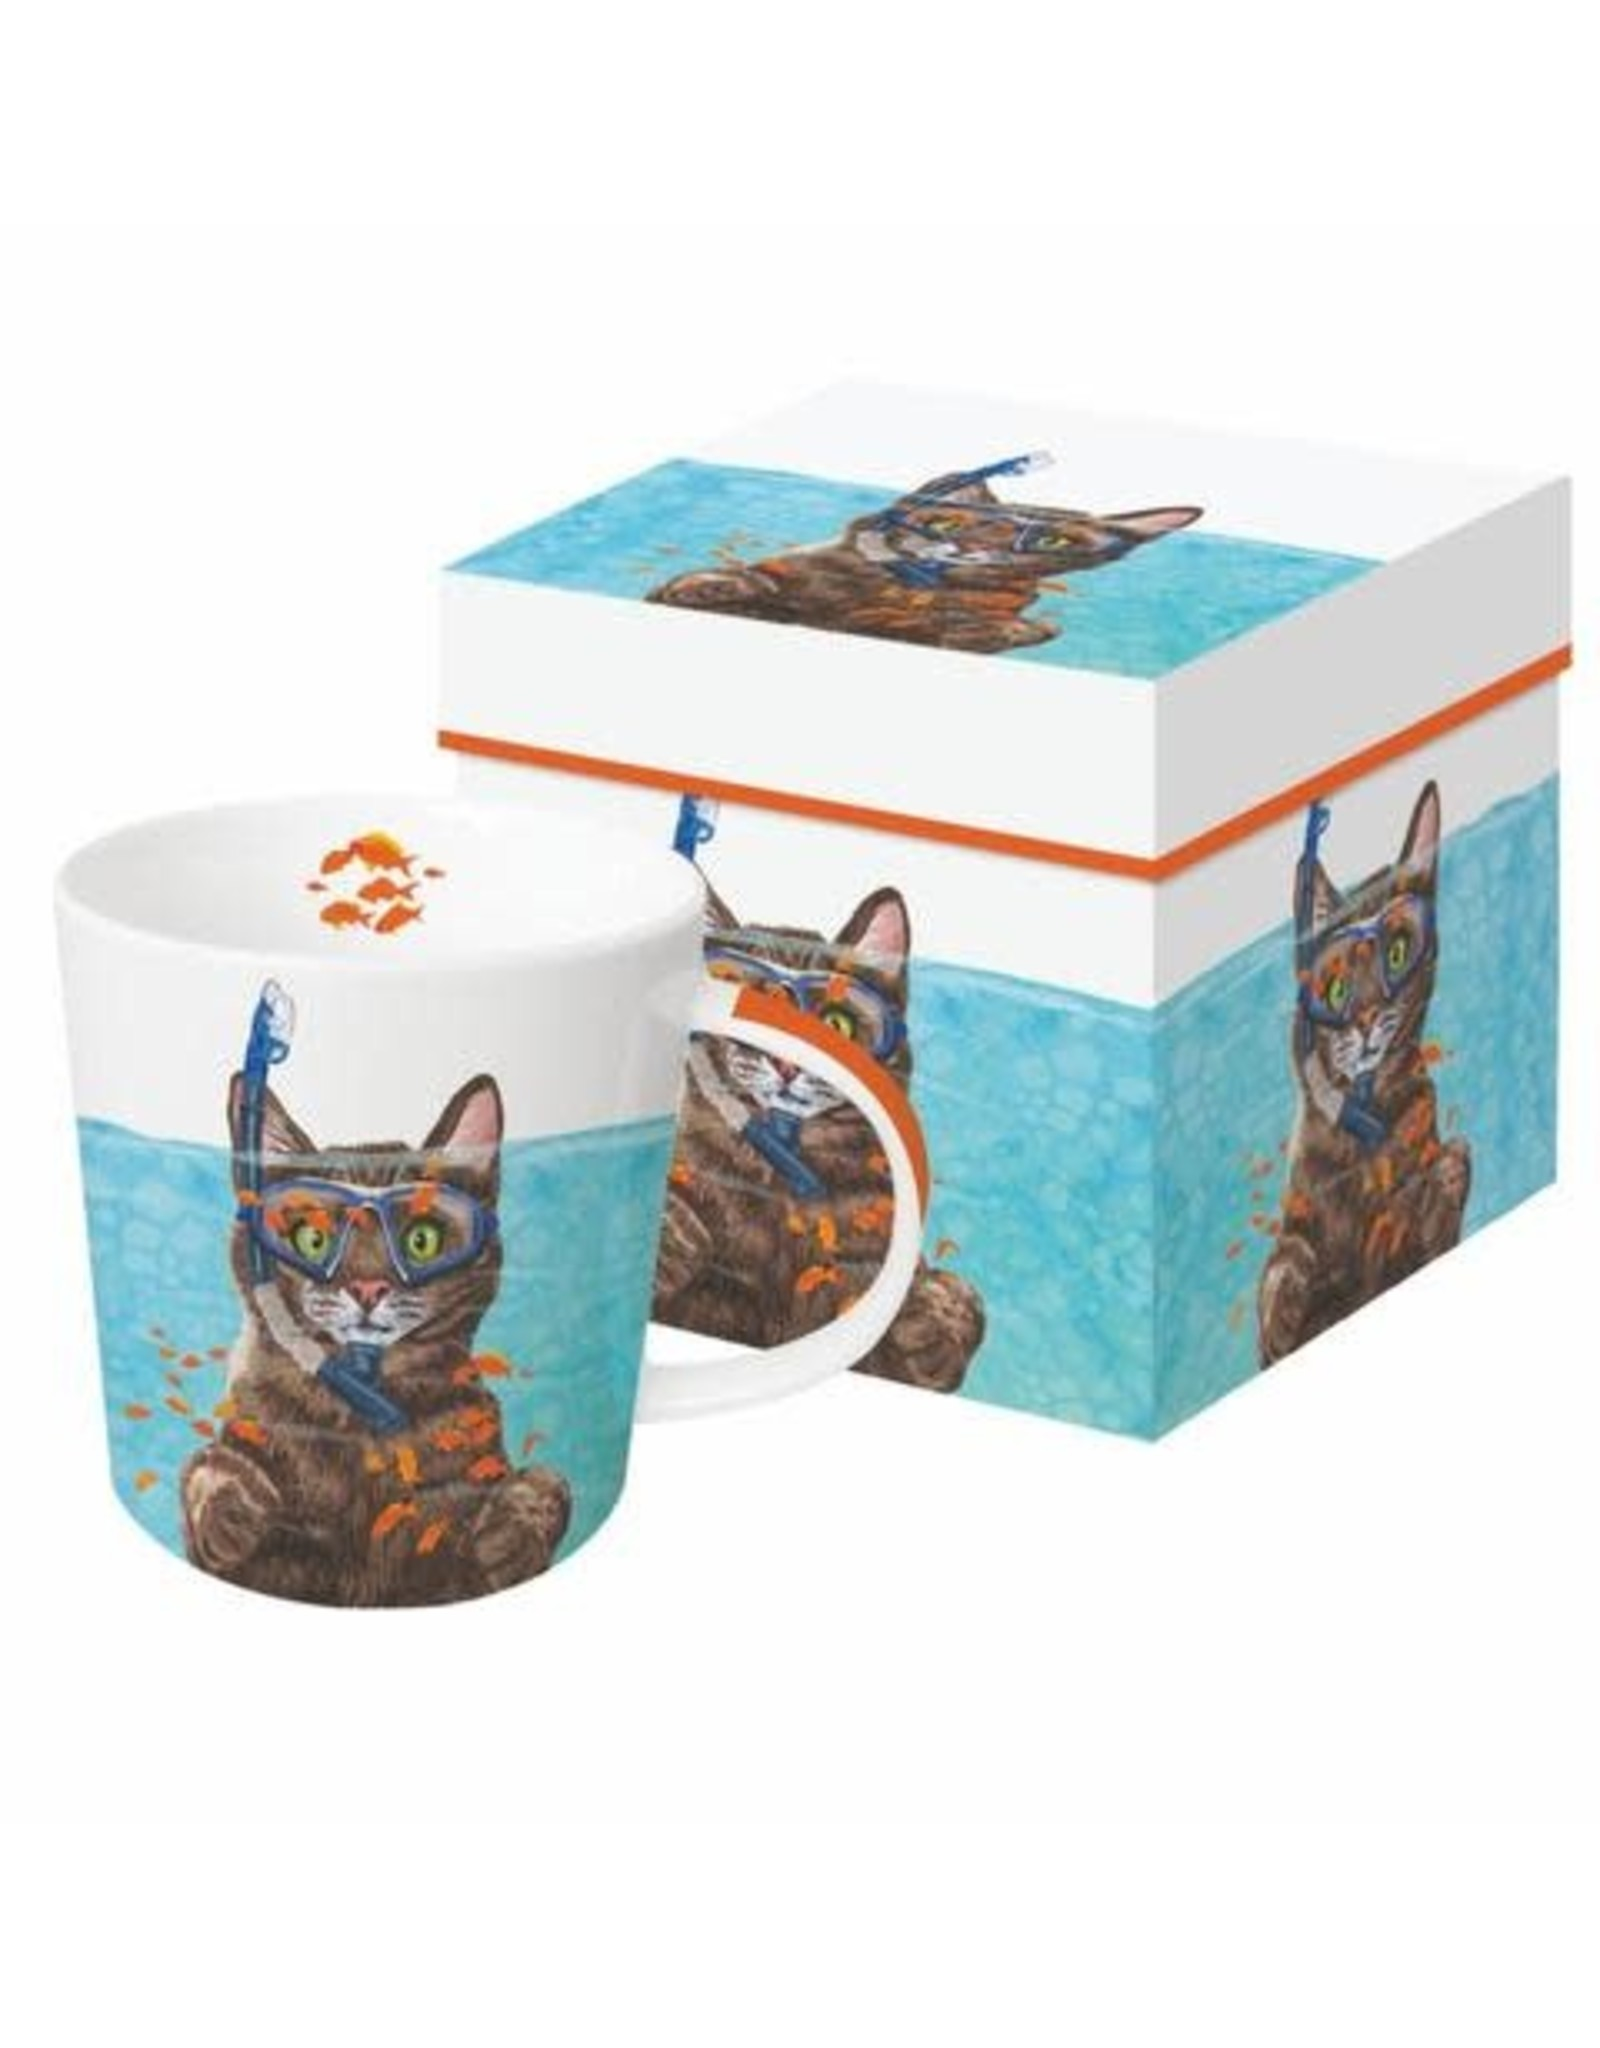 Paper Products Designs COUSTEAU  MUG IN A GIFT BOX